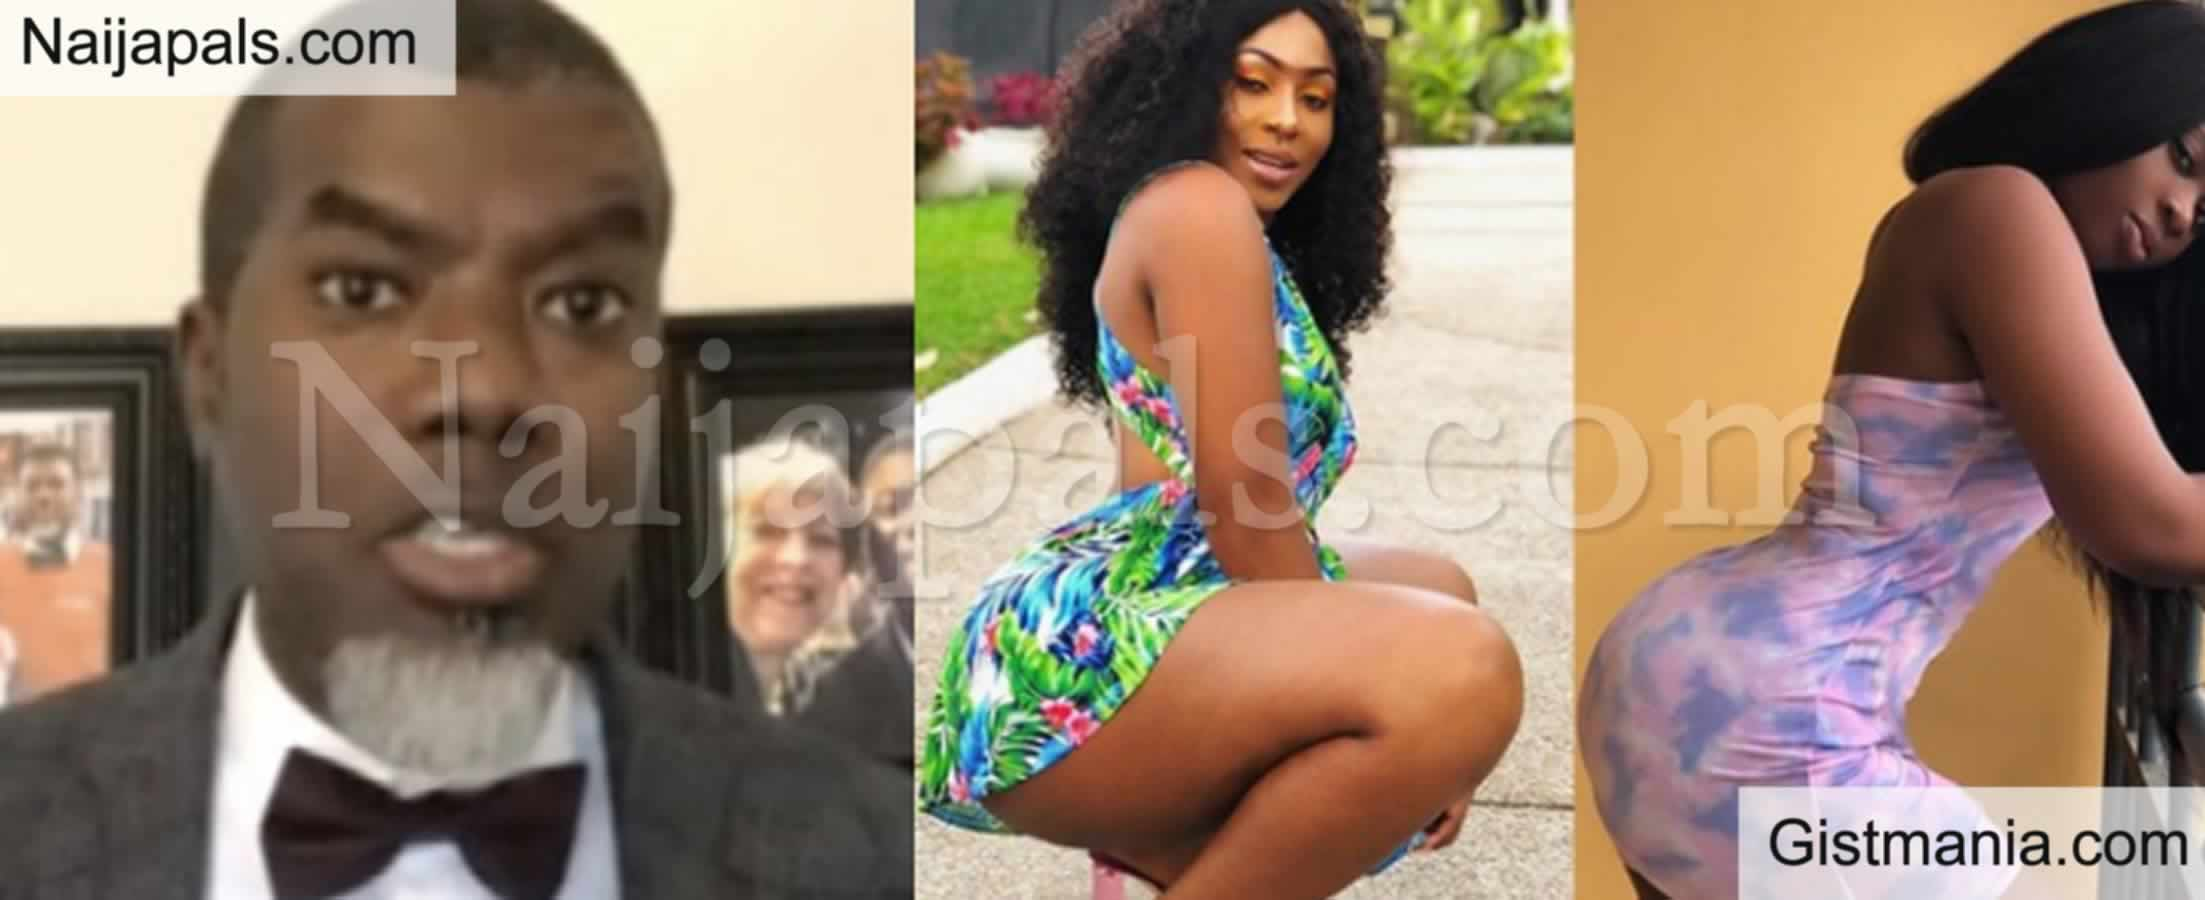 <img alt='.' class='lazyload' data-src='https://img.gistmania.com/emot/thumbs_up.gif' /> <b>Reno Omokri Urges Men To Stick To One Woman, Says Too Much Of Women Can Destroy</b>